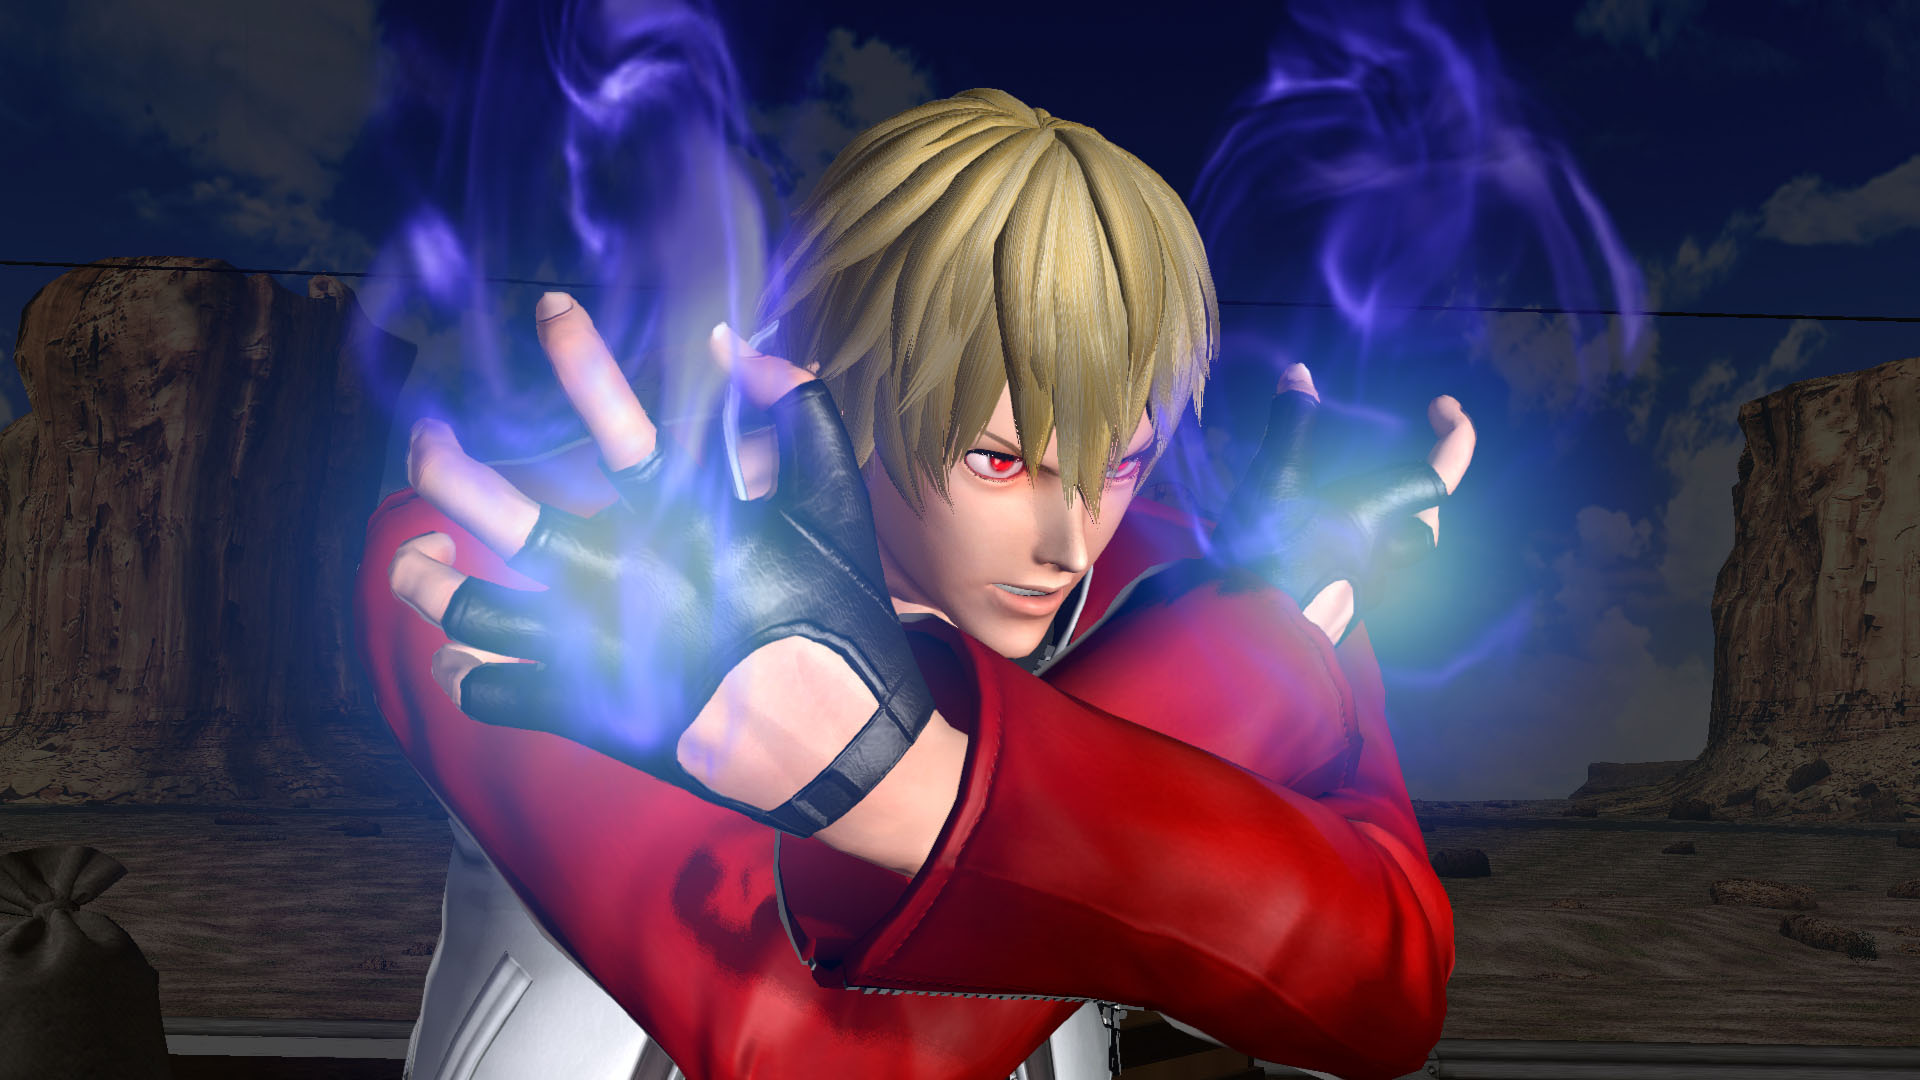 The King Of Fighters Xiv Rock Howard Screen 6 The king of fighters xiv: king of fighters xiv rock howard screen